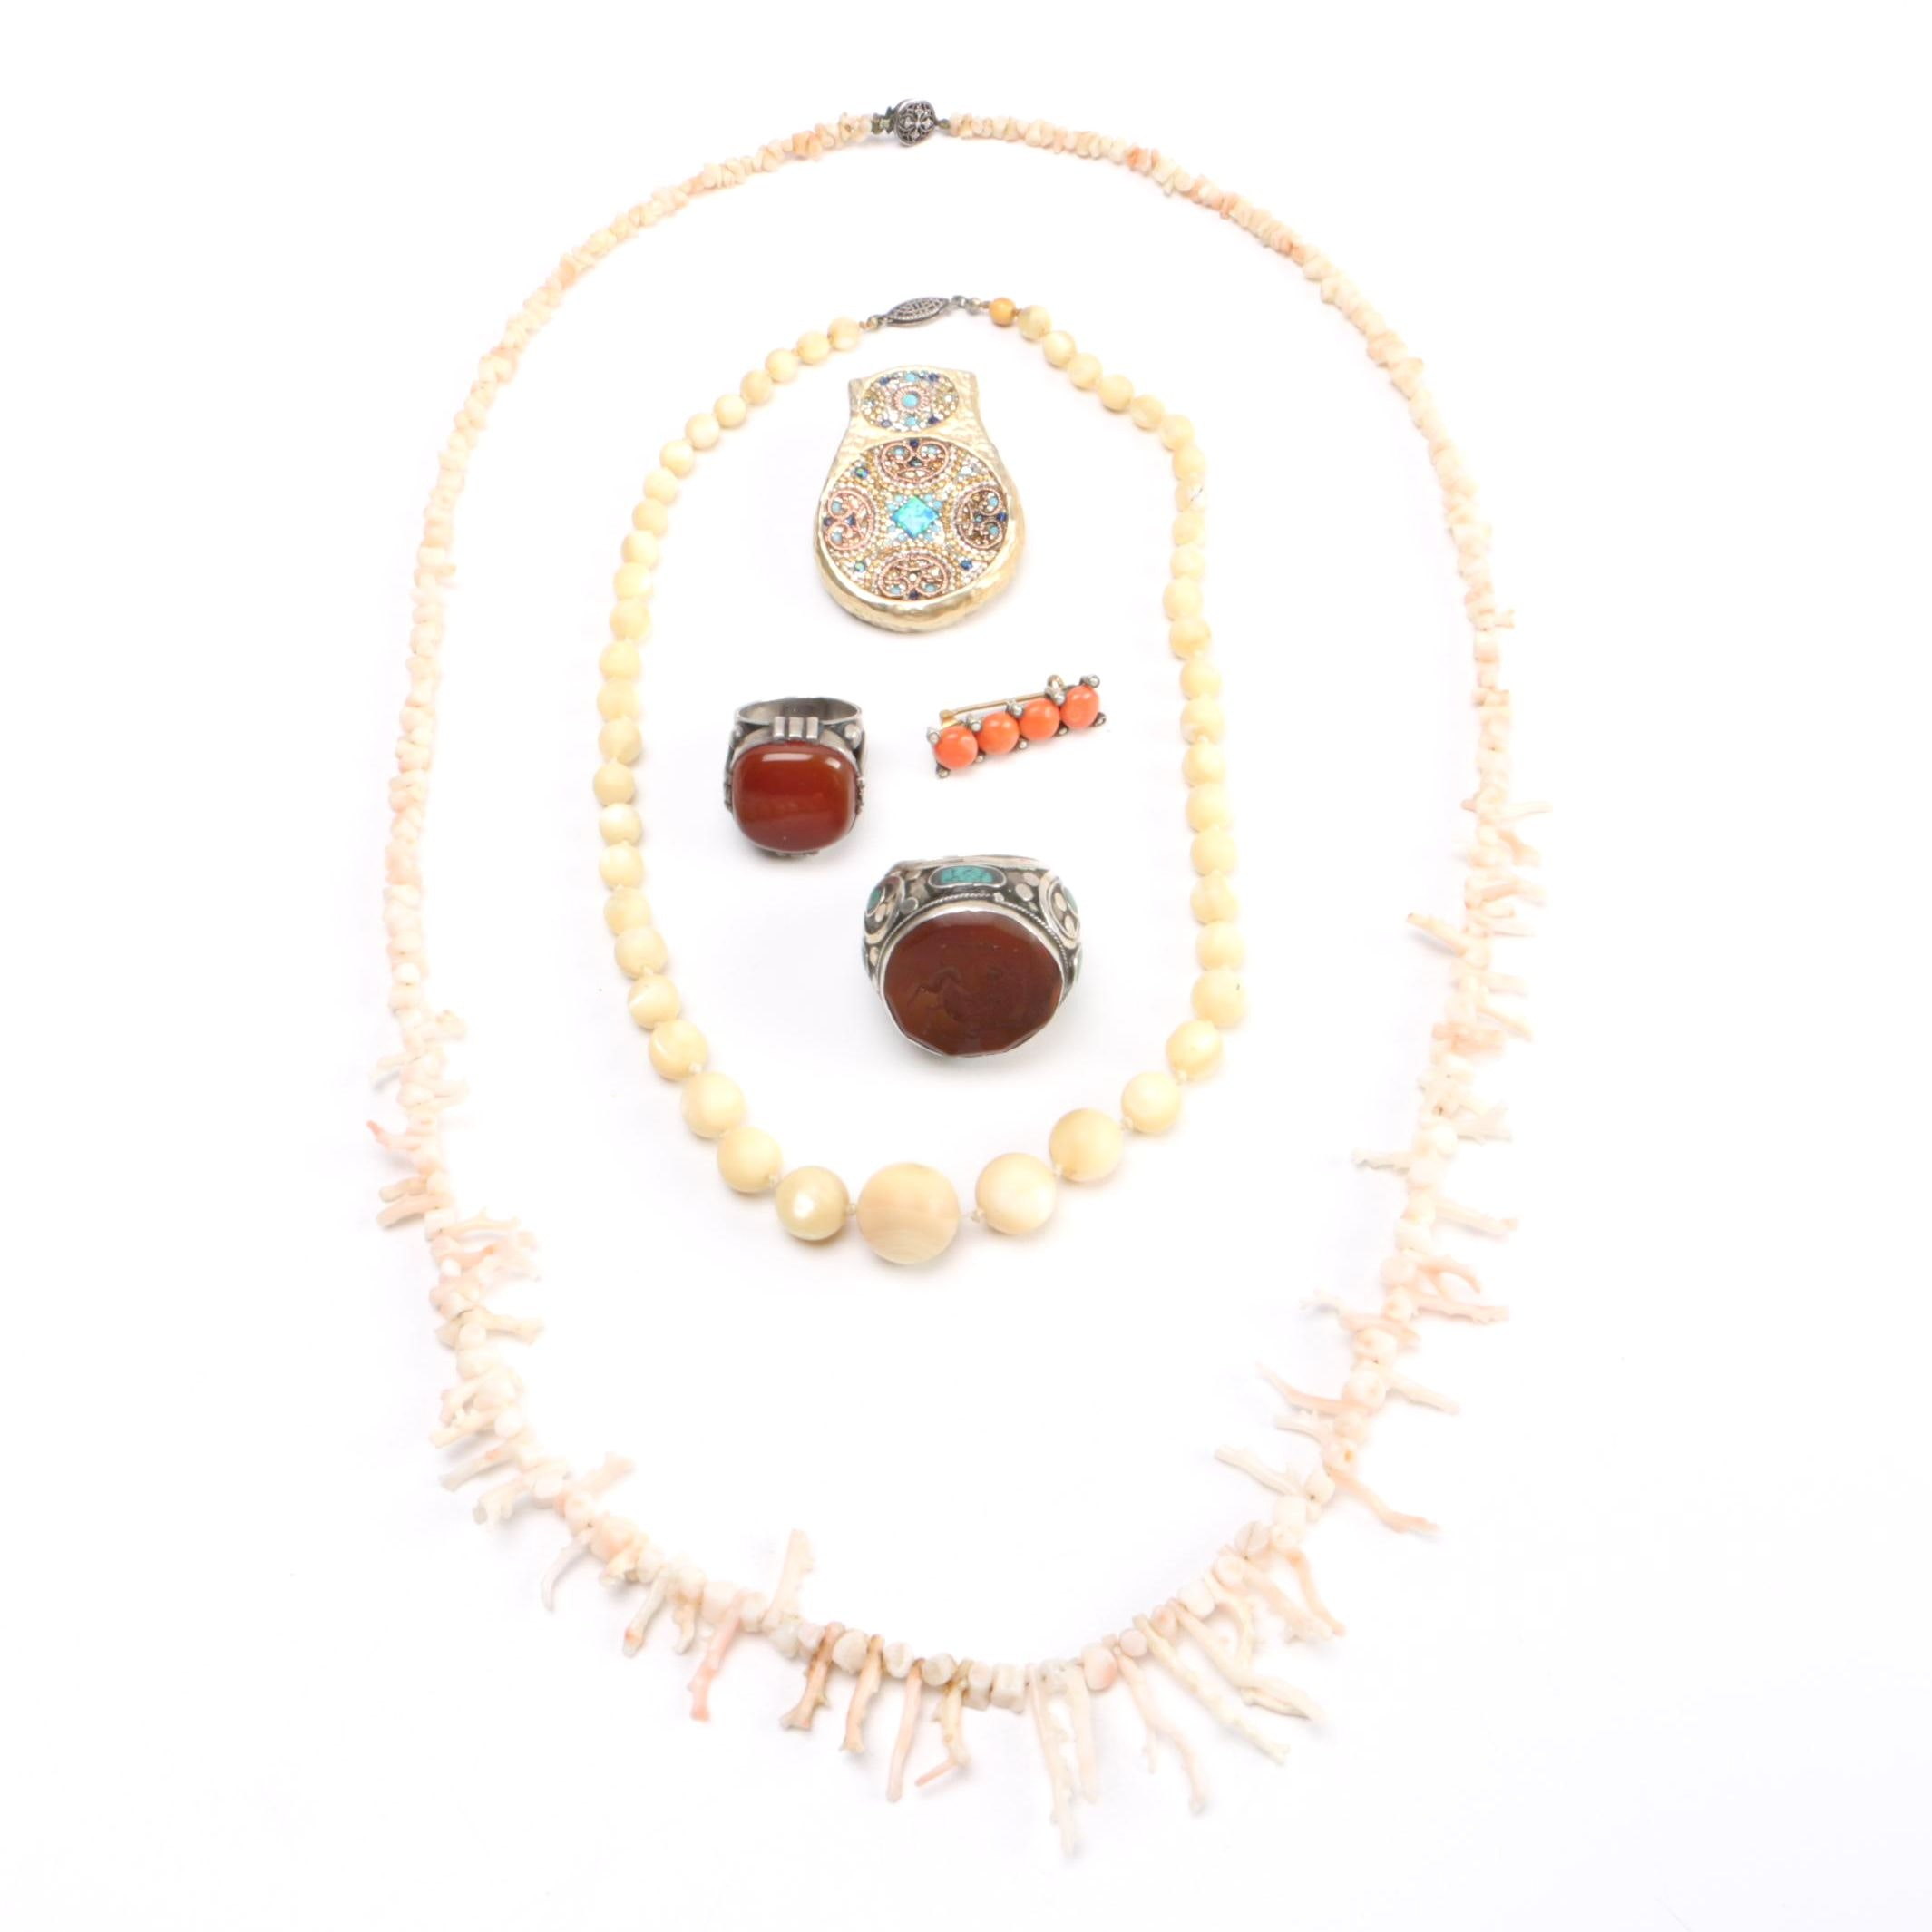 Sterling Silver Jewelry Assortment Including a Coral Necklace